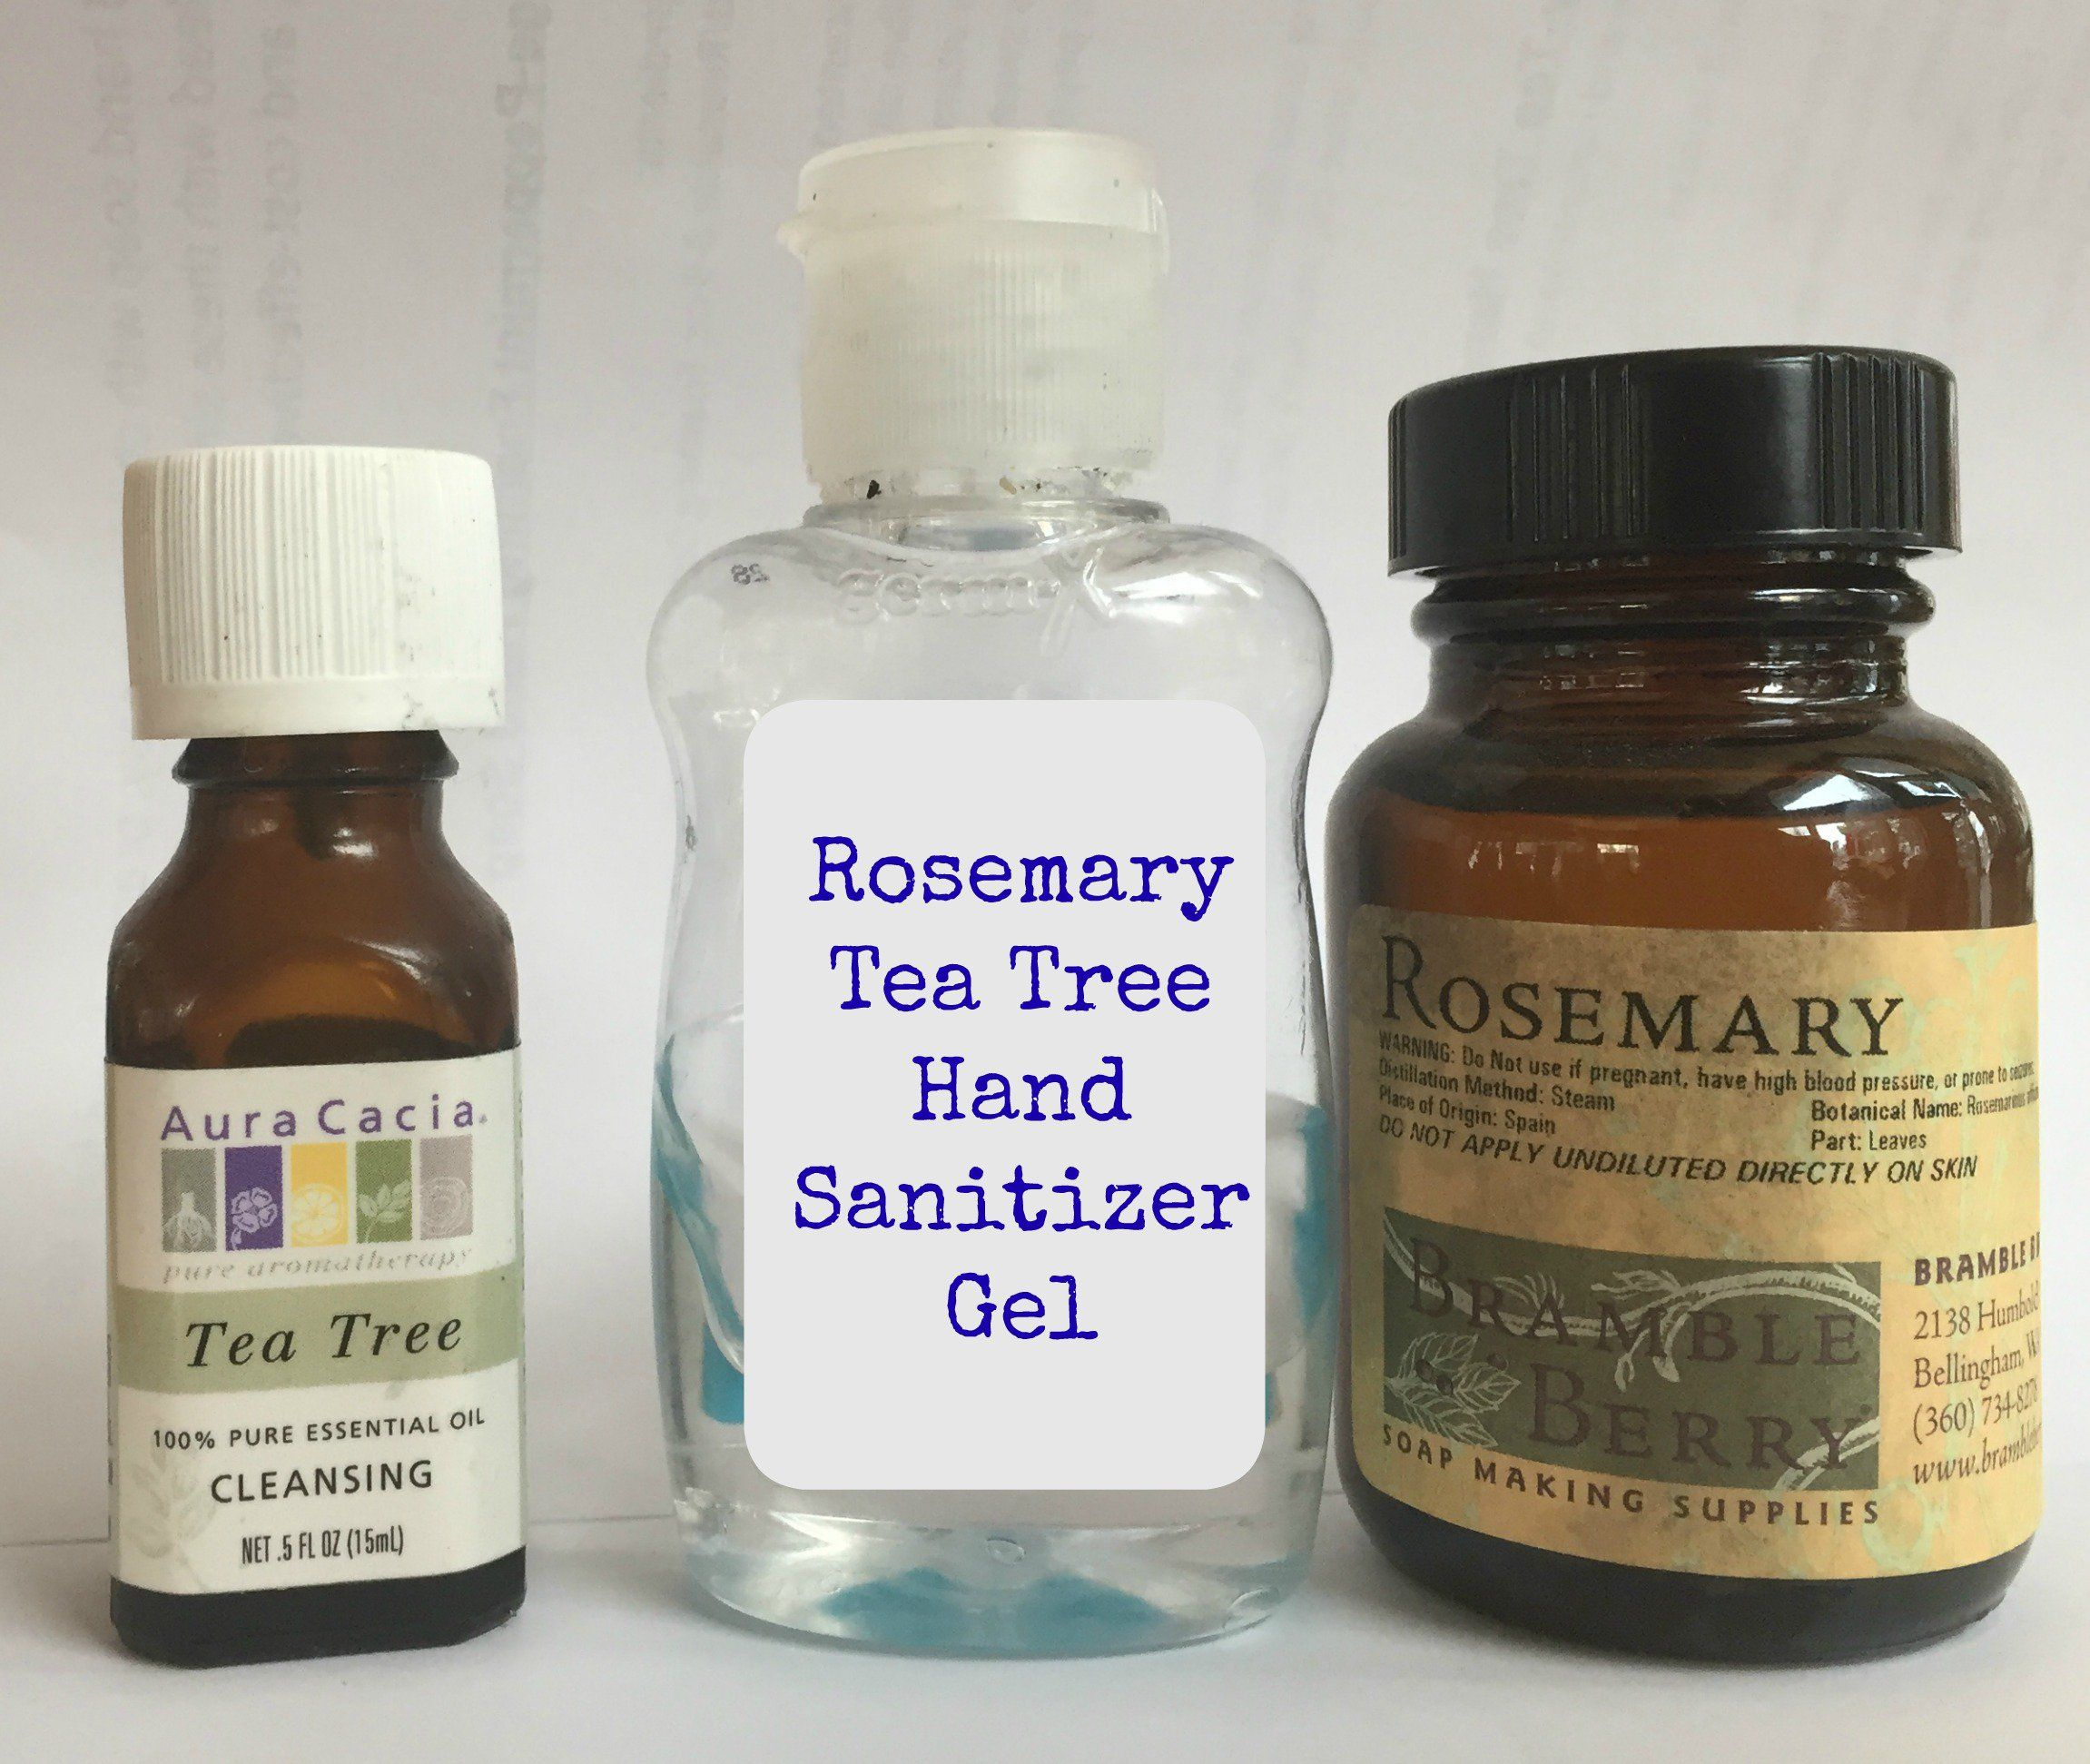 The Diy Sanitizer Recipes You Re Seeing Everywhere Don T Work